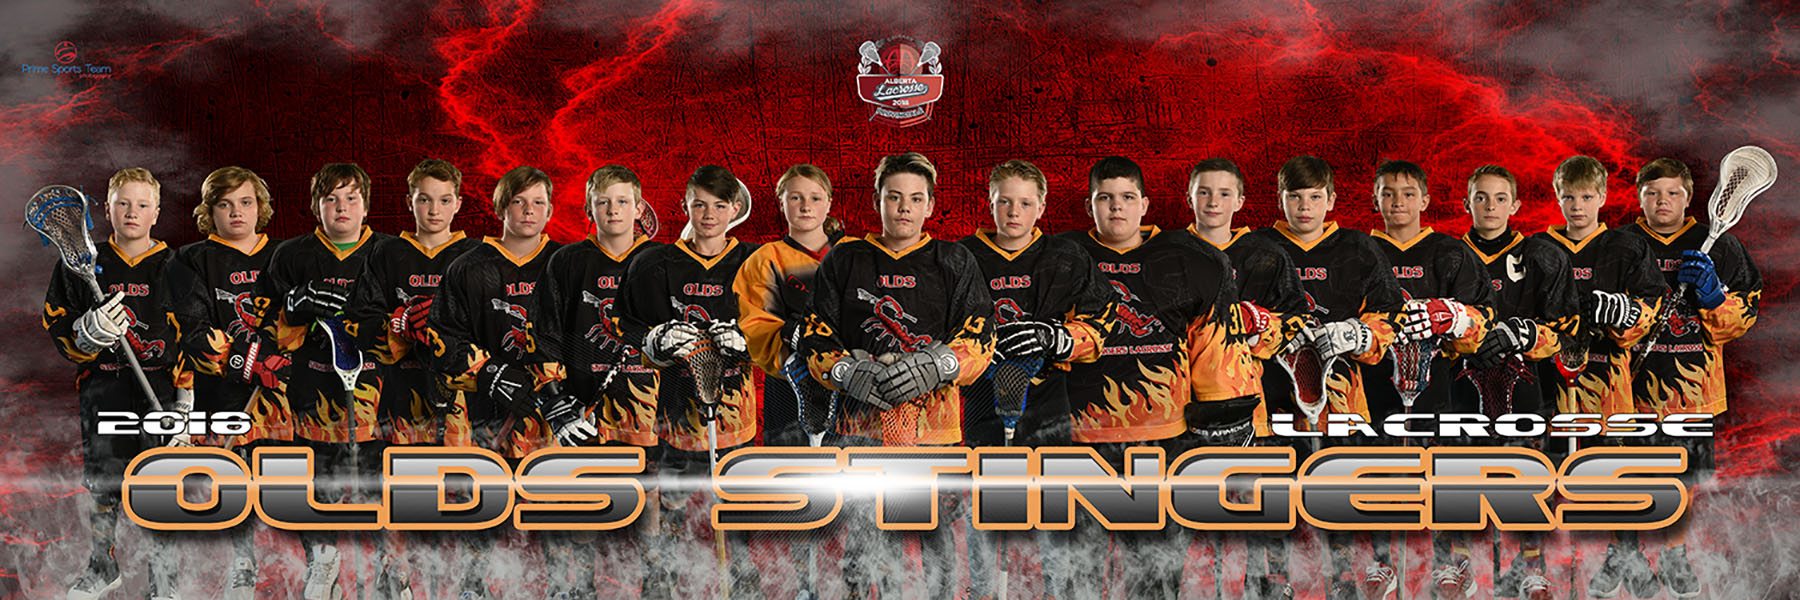 Extreme Team Pano. - Book a time below for your Team and individual photo session 15 minutes per team.